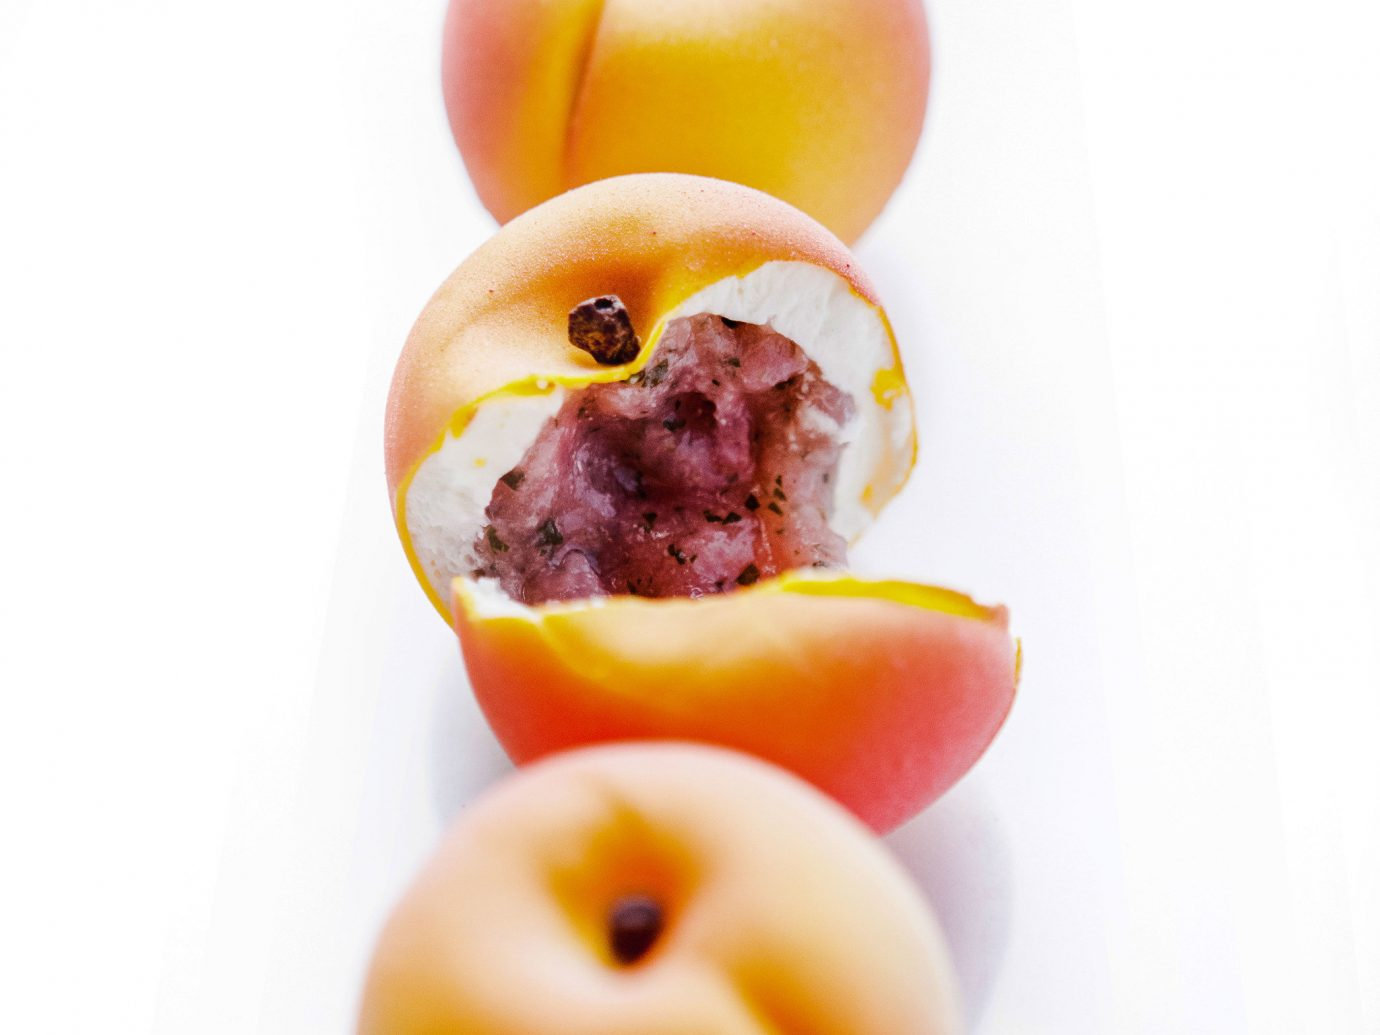 europe Trip Ideas fruit food produce peach sliced donut apricot